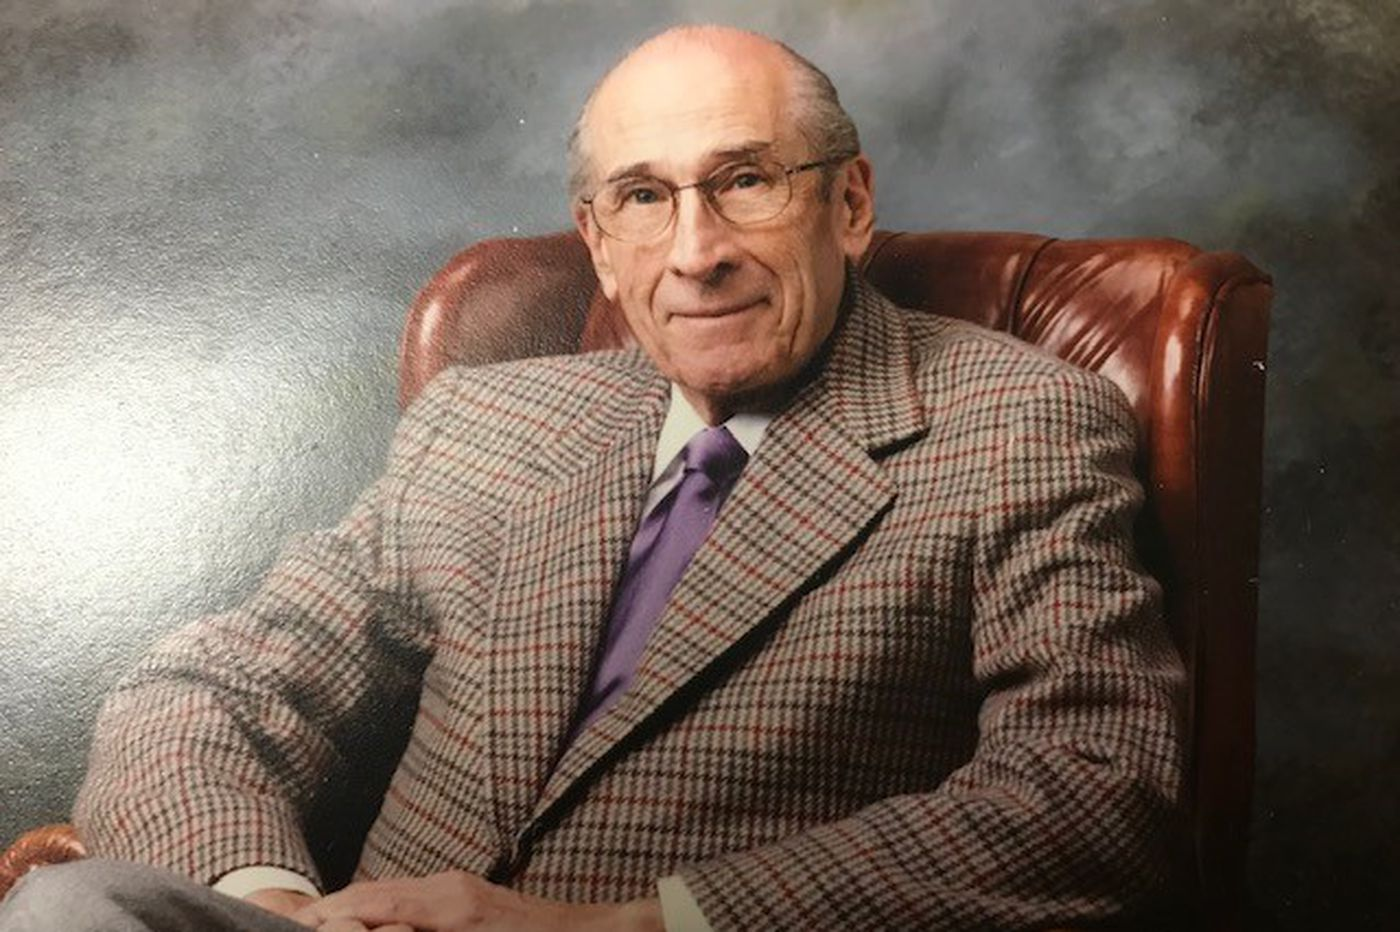 James C. McConnon, Former Chairman of Republican Party in Lower Merion, Dies at 93